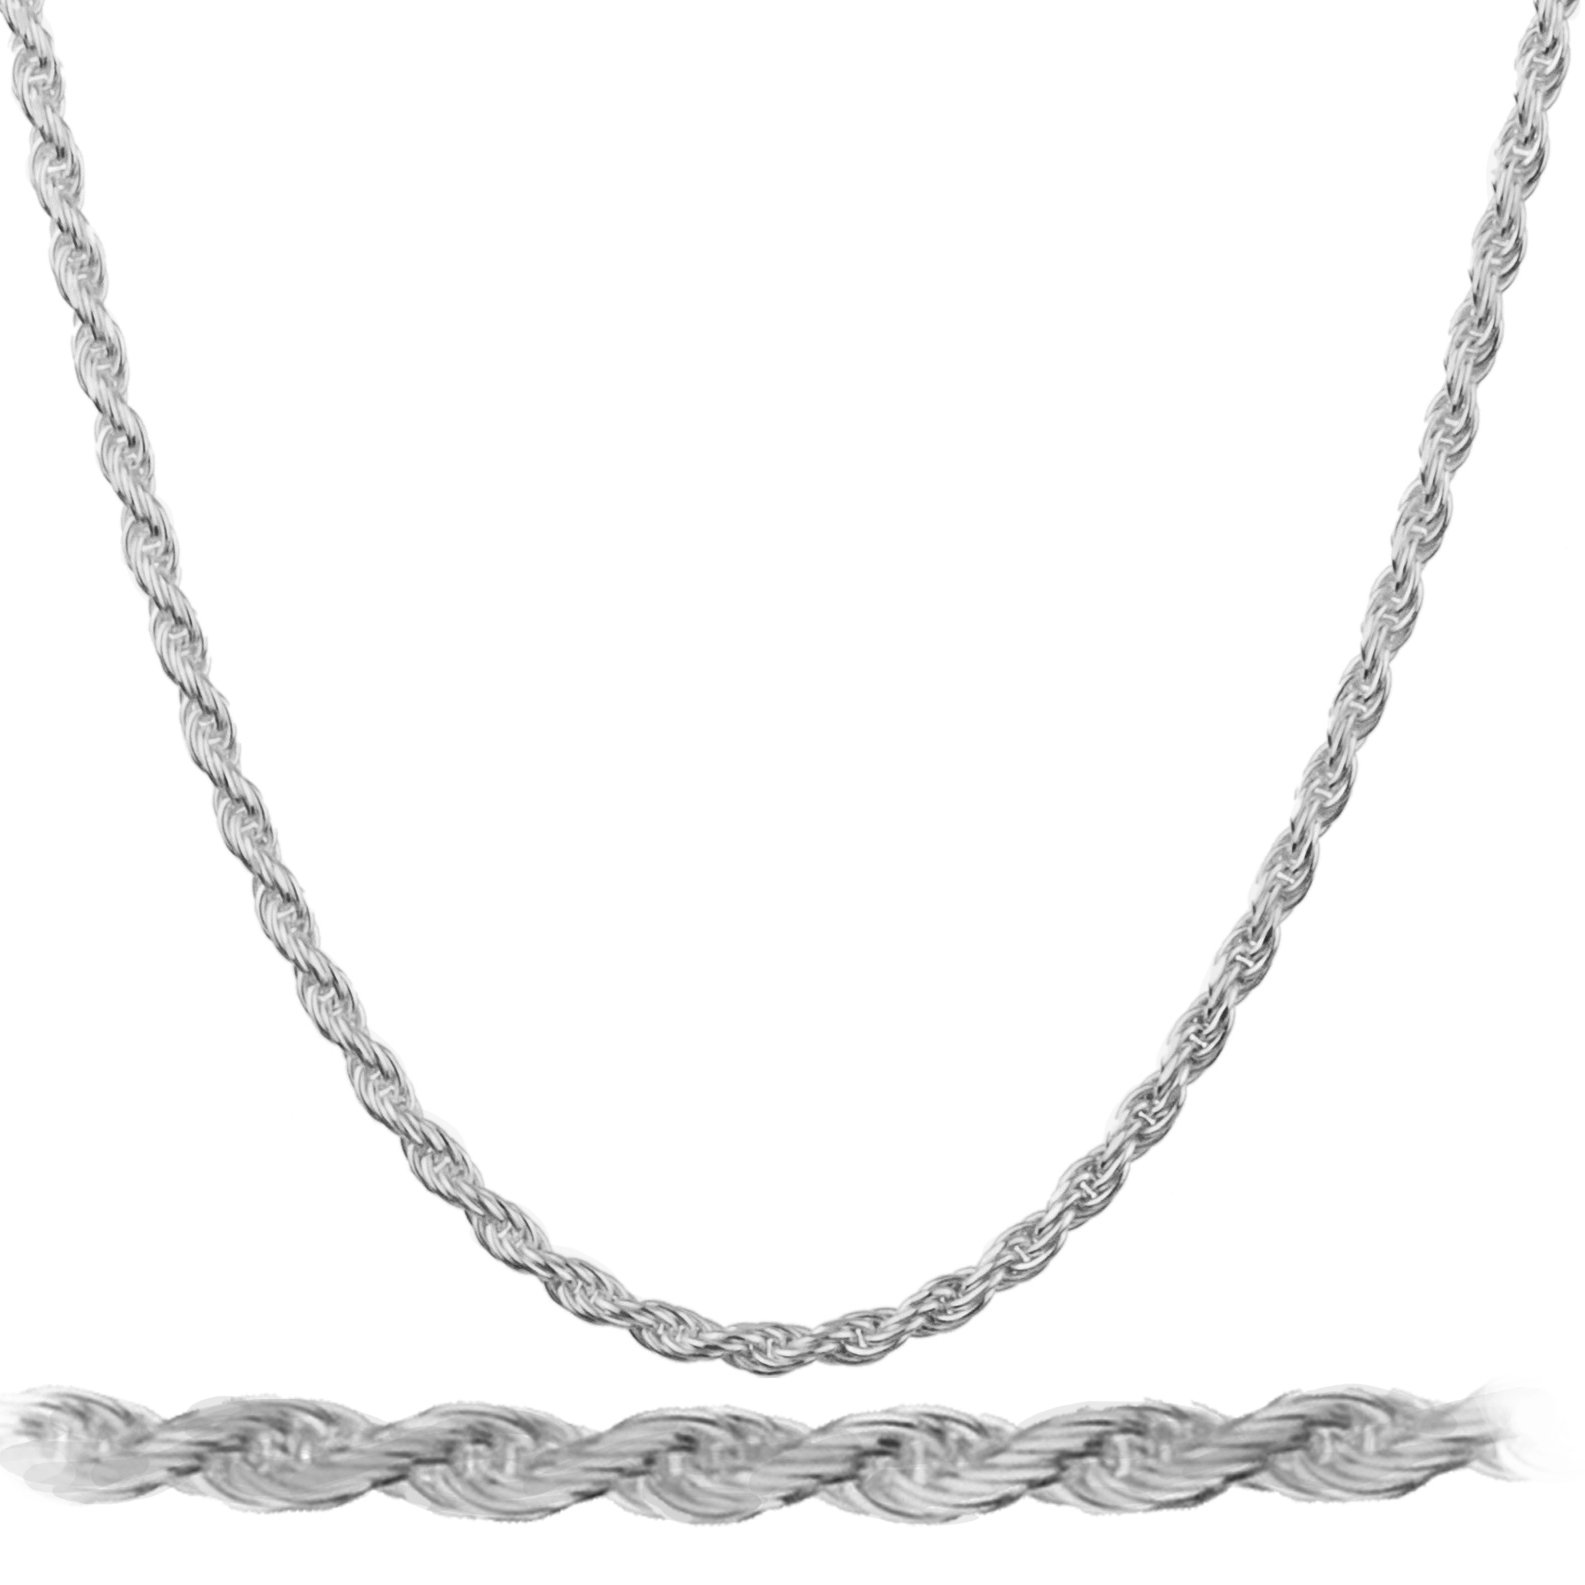 JOTW Rhodium Plated Sterling Silver 2mm Rope Chain Necklace - All Lengths Available (24 Inches) (I-3535)